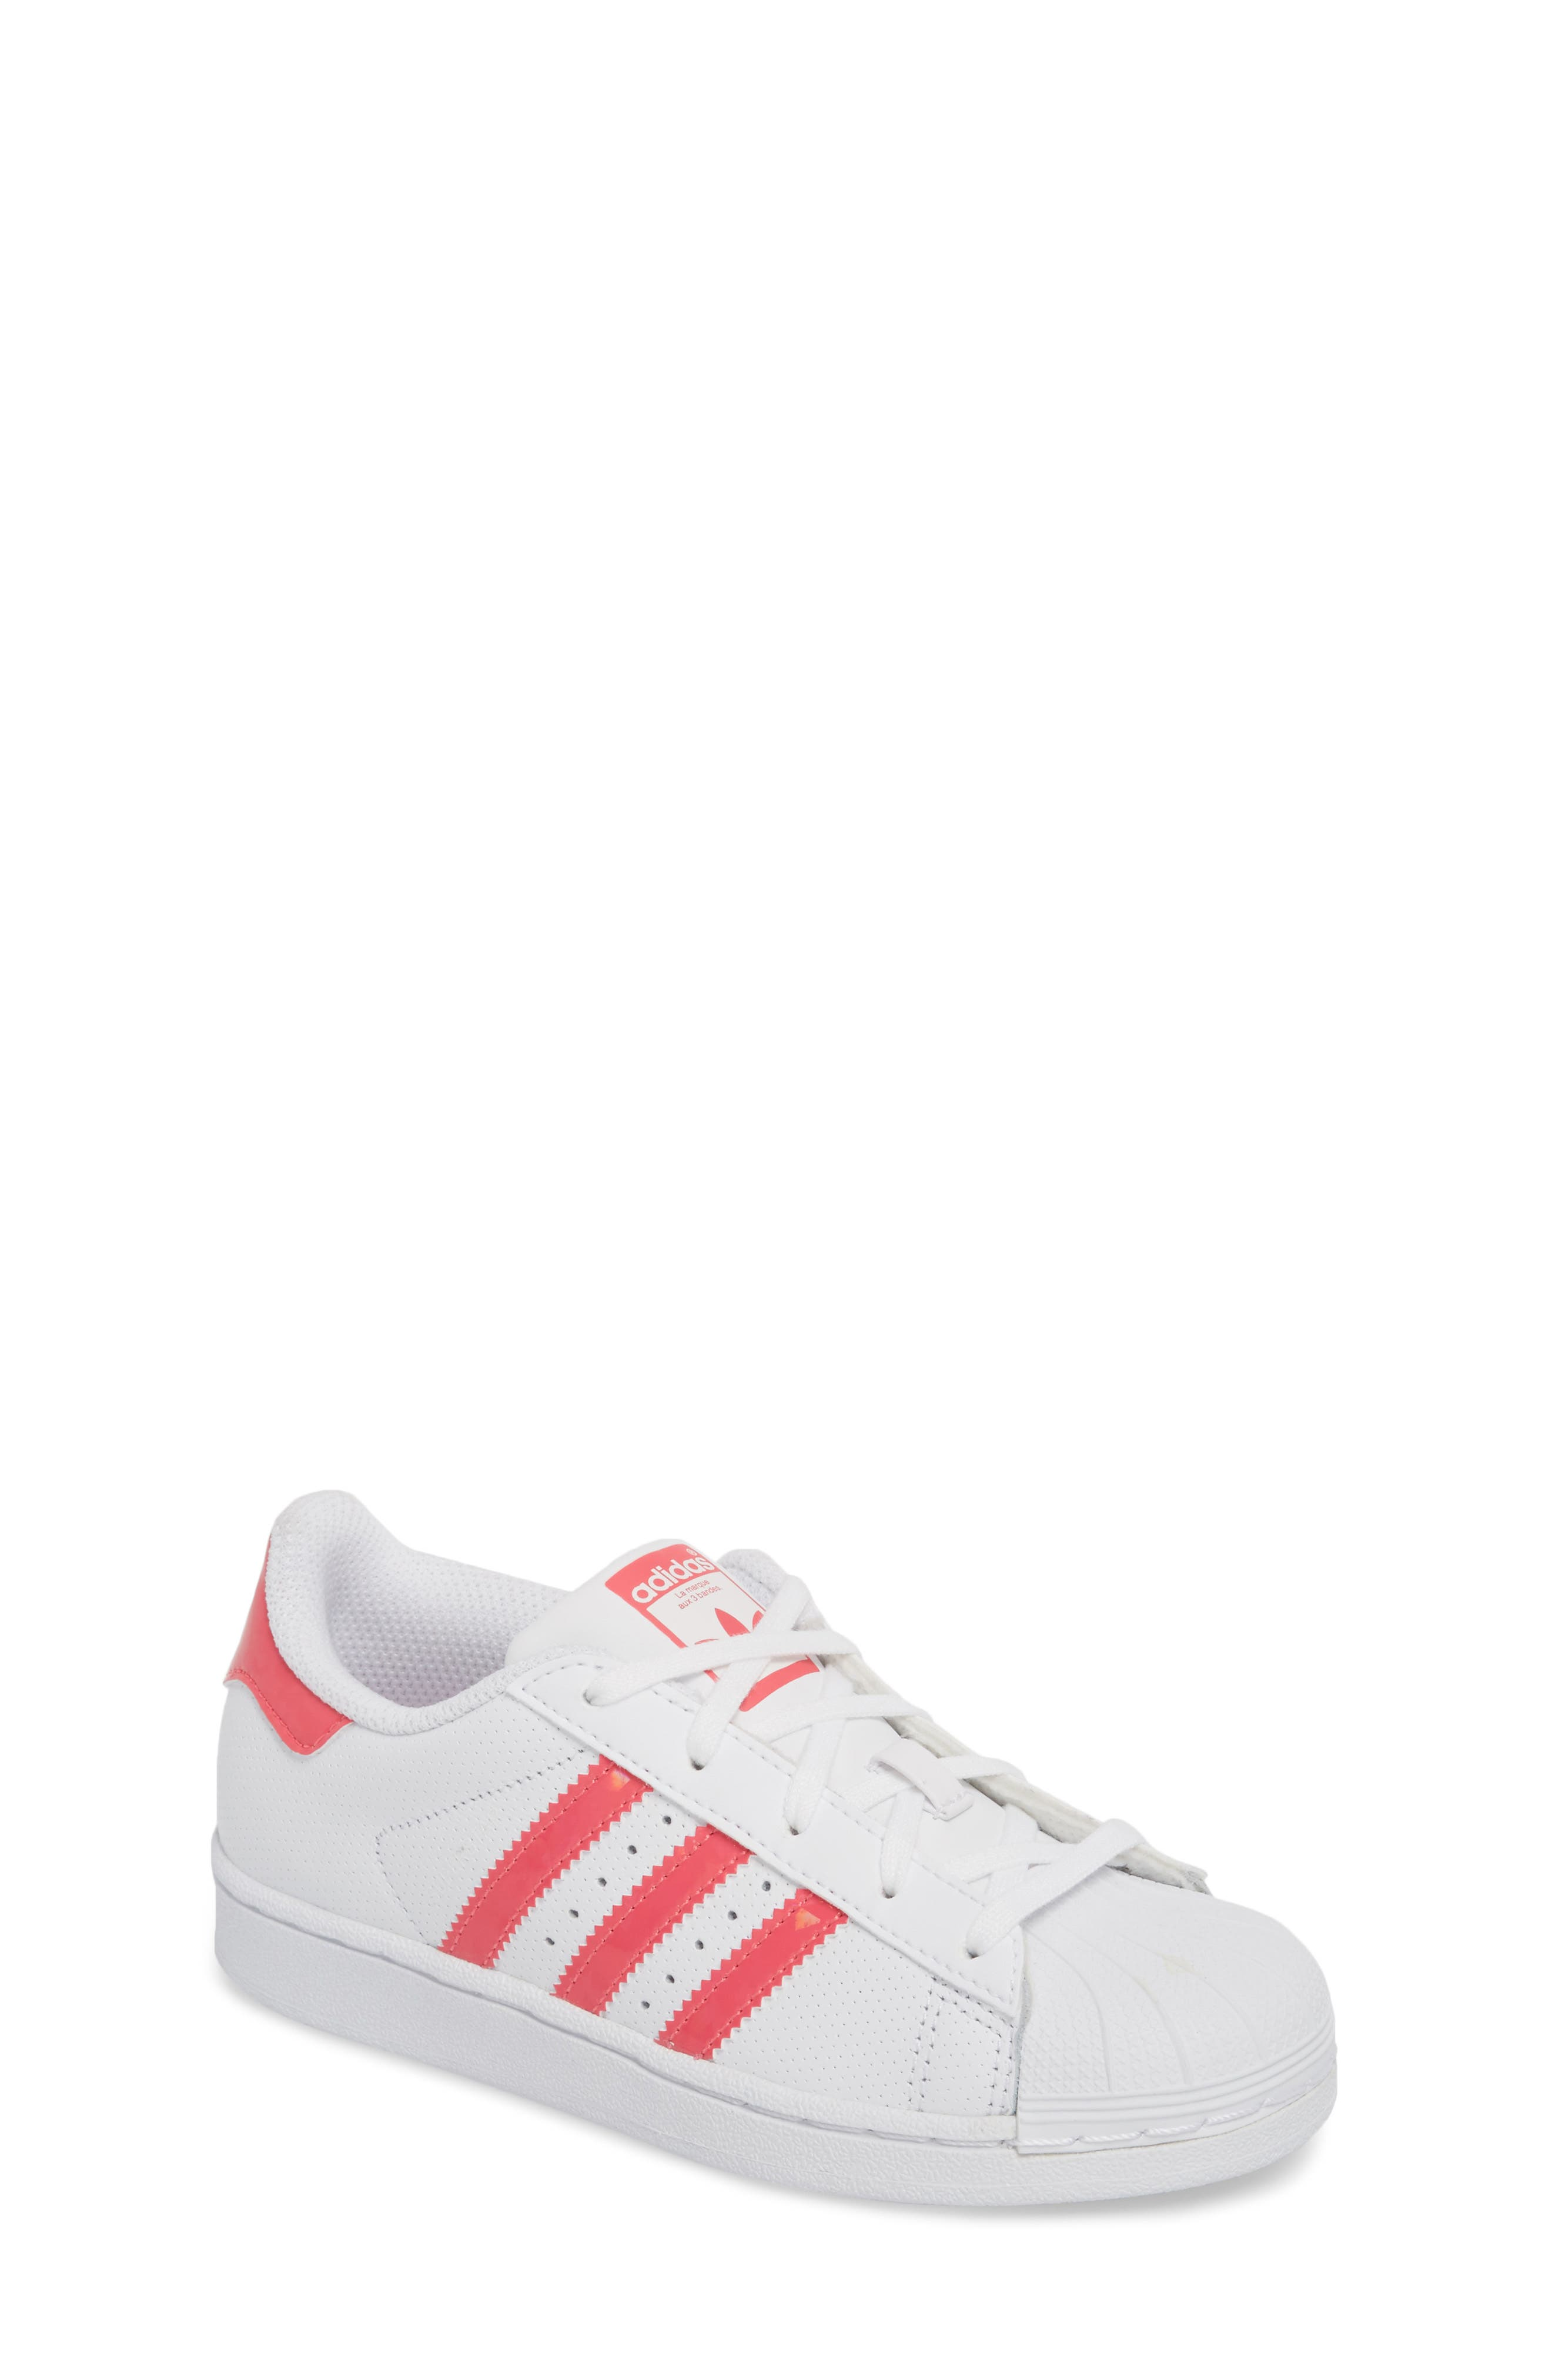 adidas Superstar Perforated Low Top Sneaker (Baby, Walker, Toddler, Little  Kid \u0026